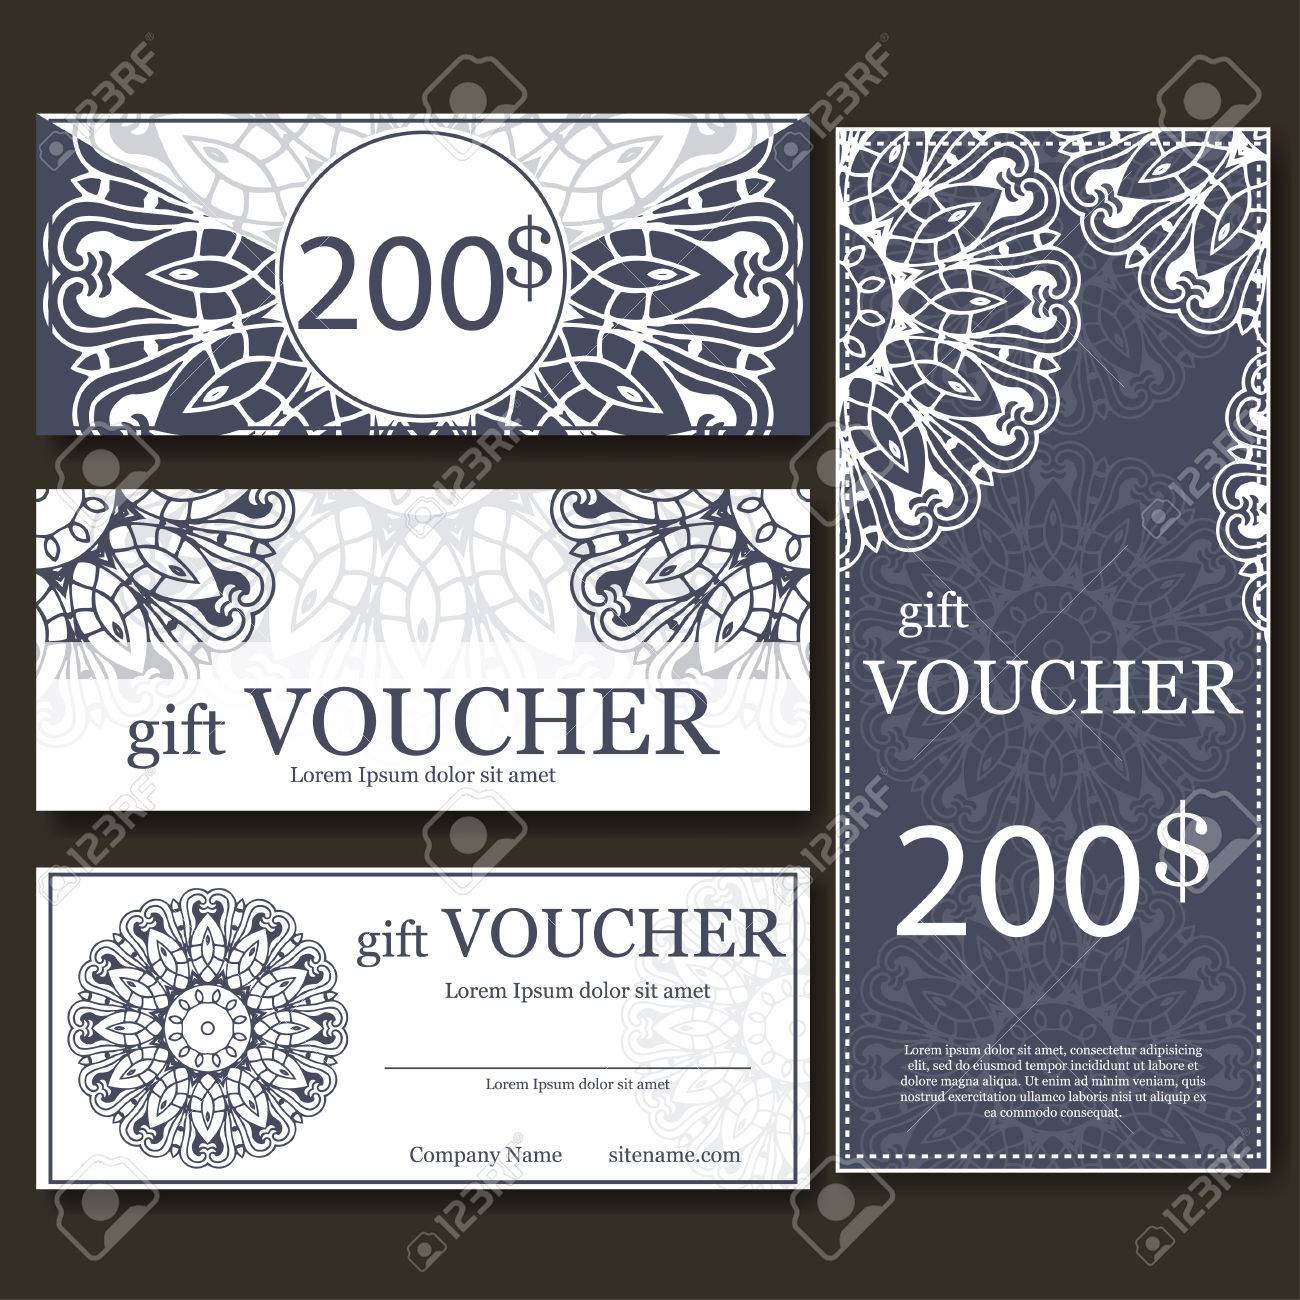 Gift Voucher Template With Mandala Design Certificate For Sport